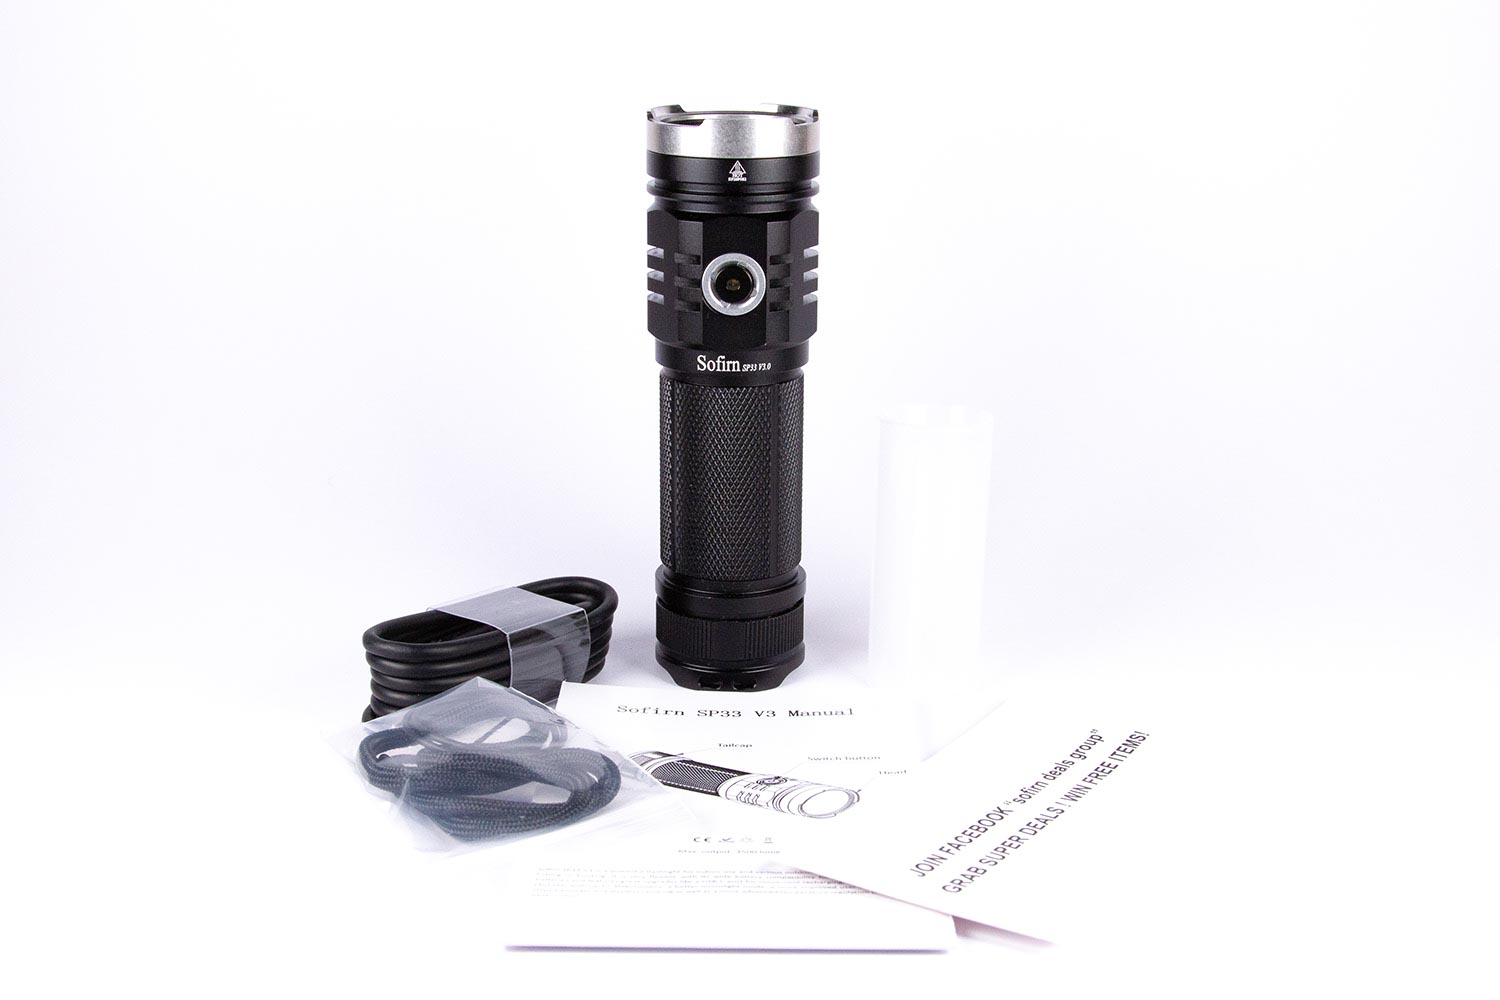 Sofirn SP33 v3 accessories